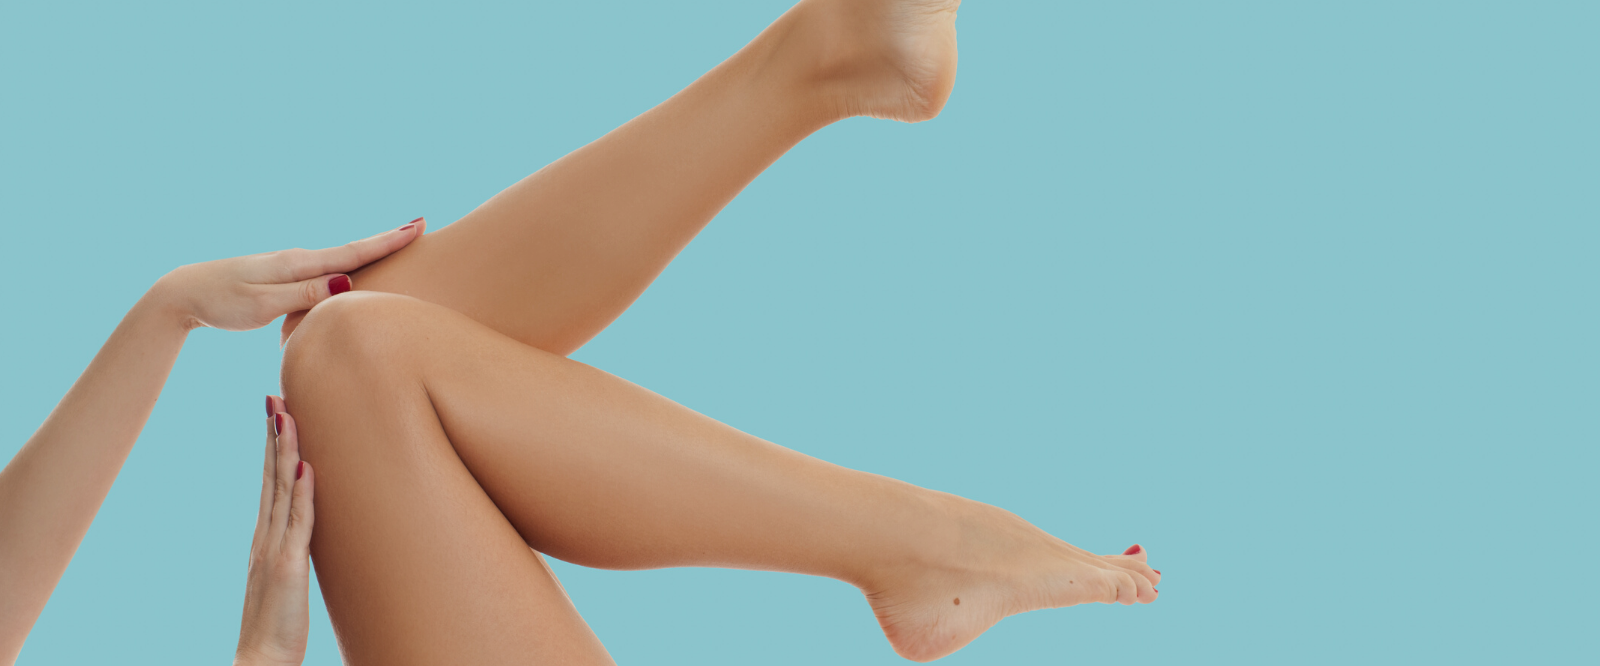 young looking legs with natural moisturizer on